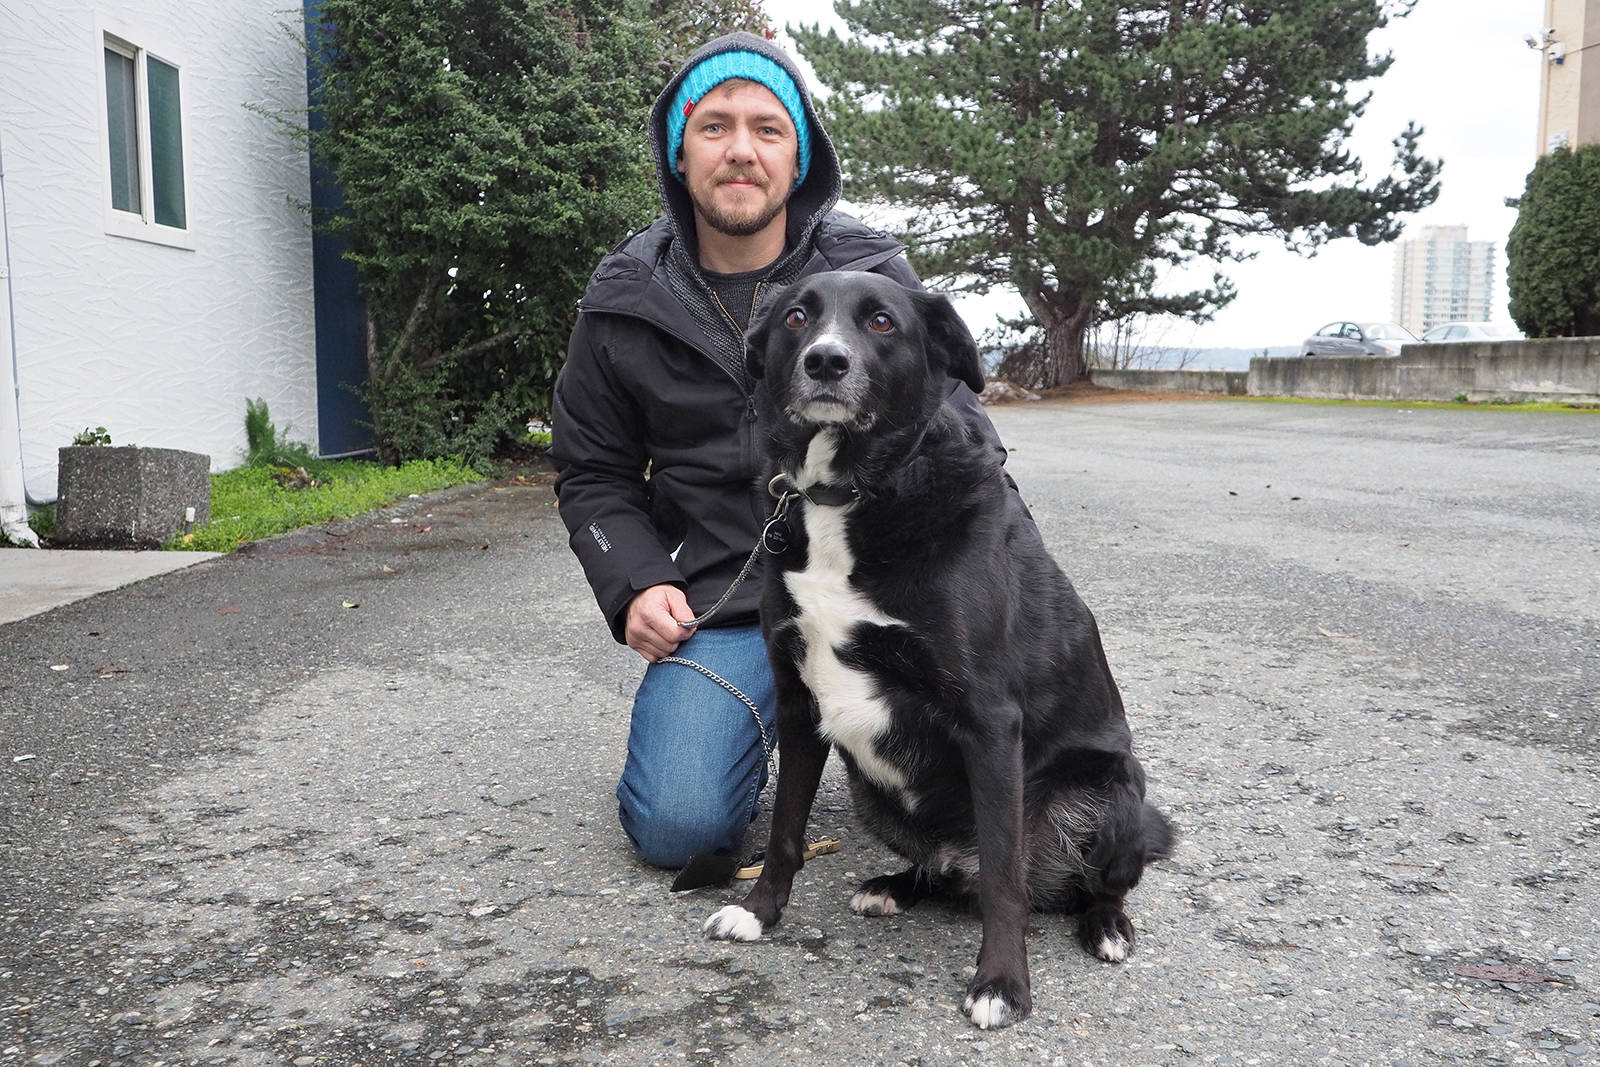 James Olson, Prideaux Street resident in Nanaimo, said he and his dog Max were attacked by a man wearing a cowboy hat, swinging a pole Wednesday. (CHRIS BUSH/The News Bulletin)